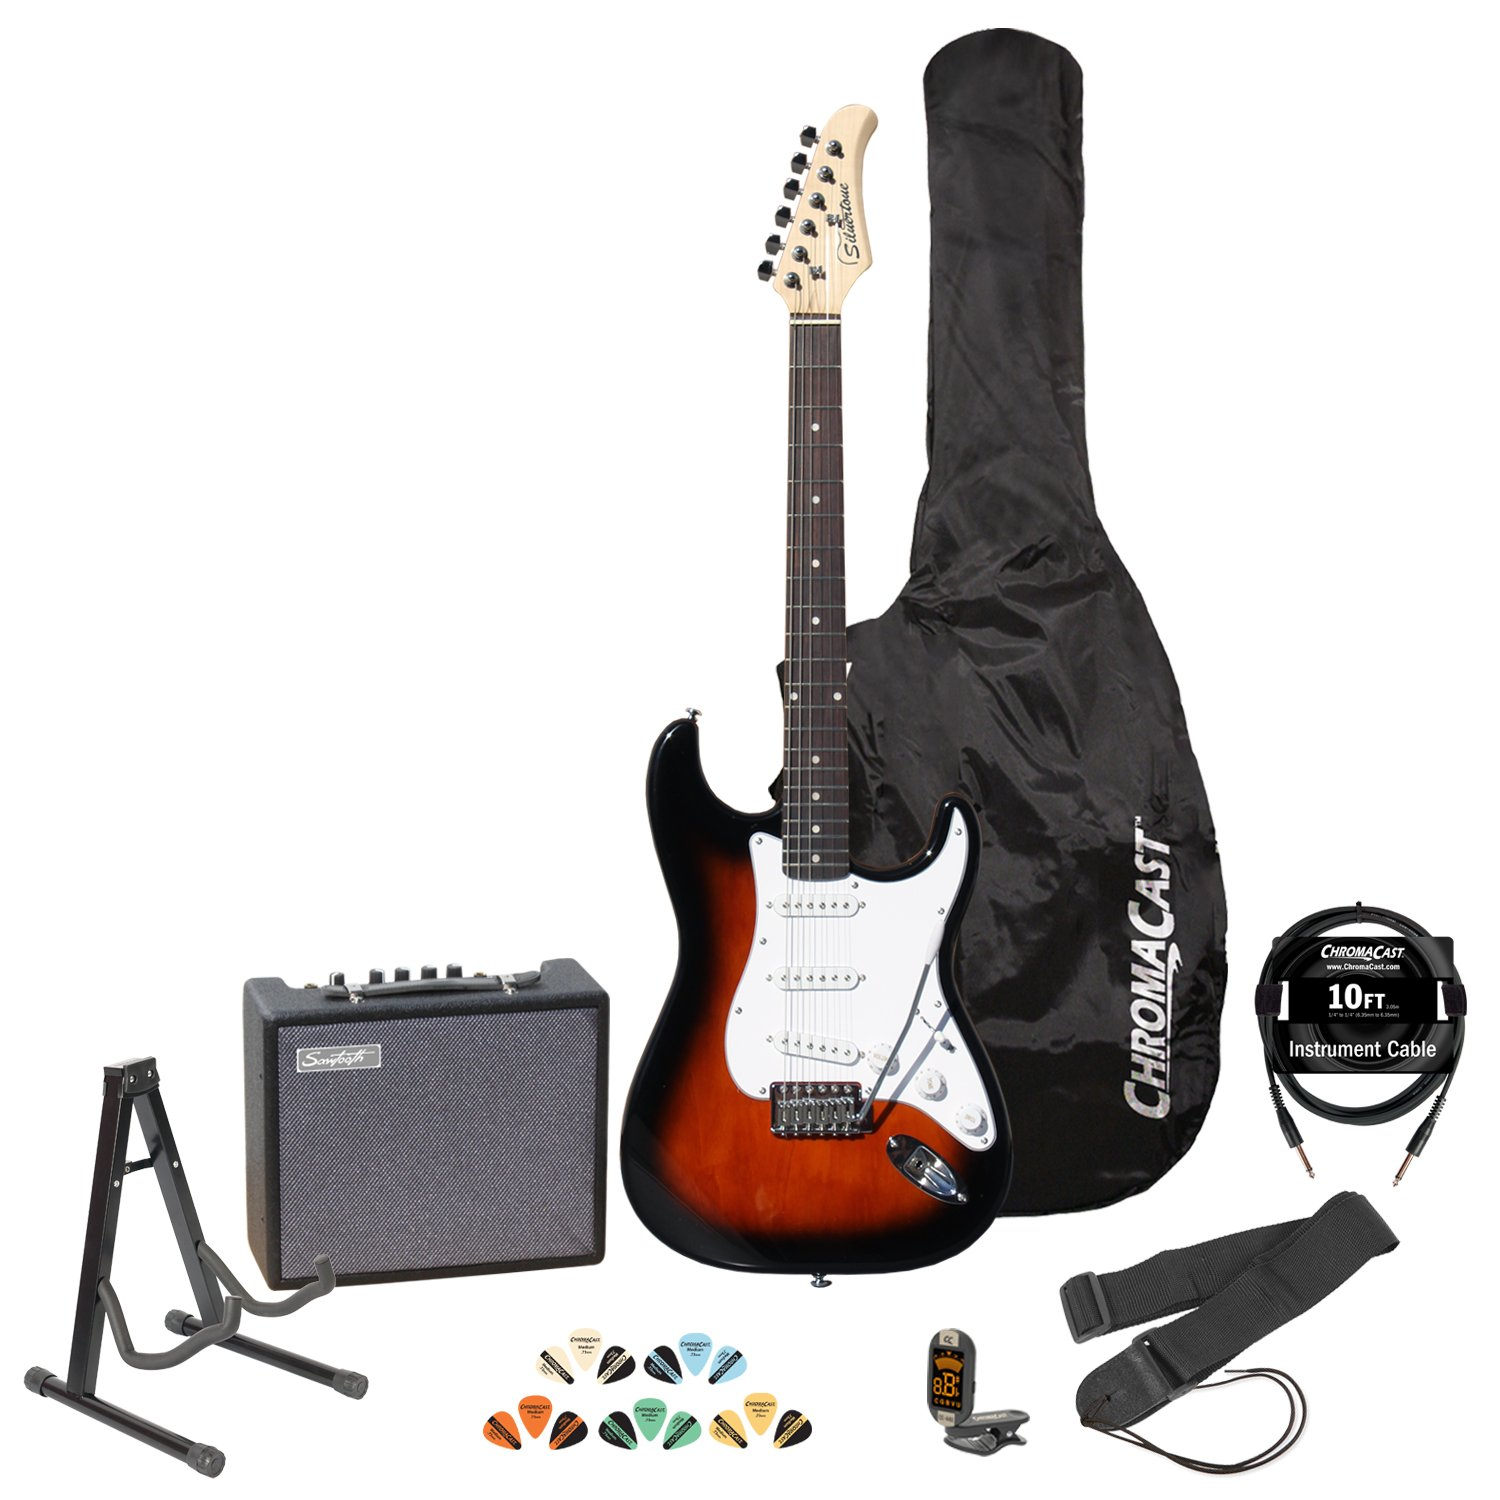 Colorful three pickup guitar model best images for wiring diagram unique three pickup guitar images best images for wiring diagram asfbconference2016 Image collections